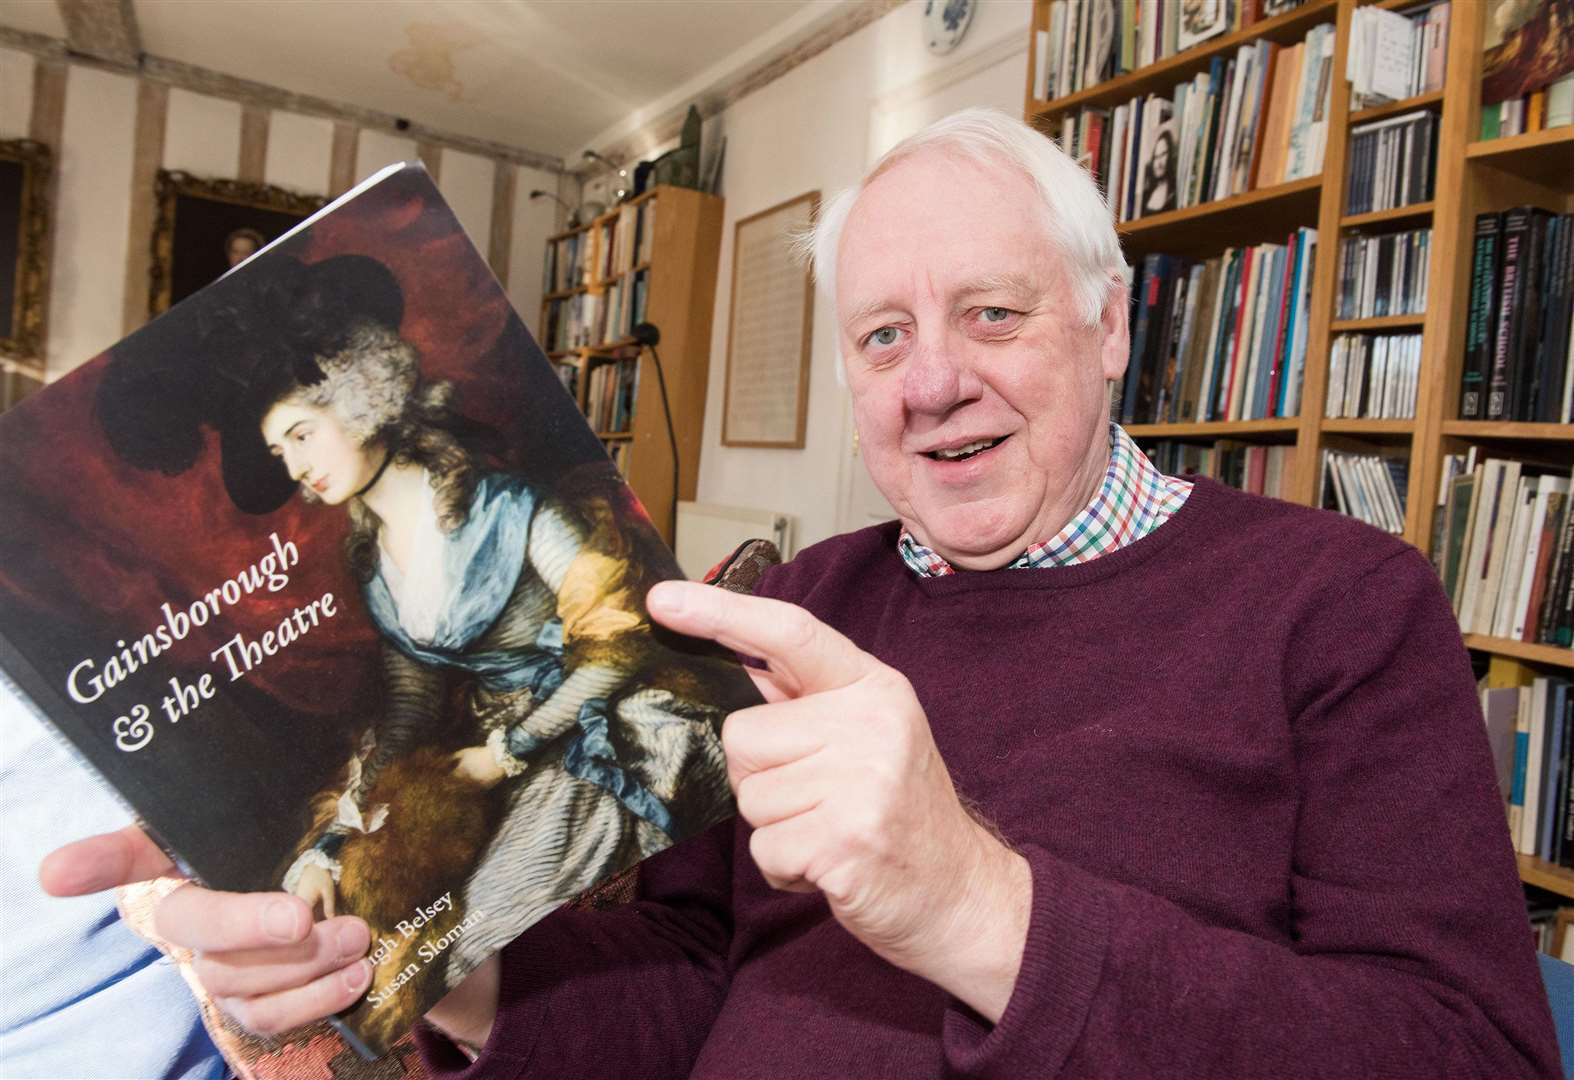 FEATURE: Historian details 14-year quest to catalogue Thomas Gainsborough portraits into book